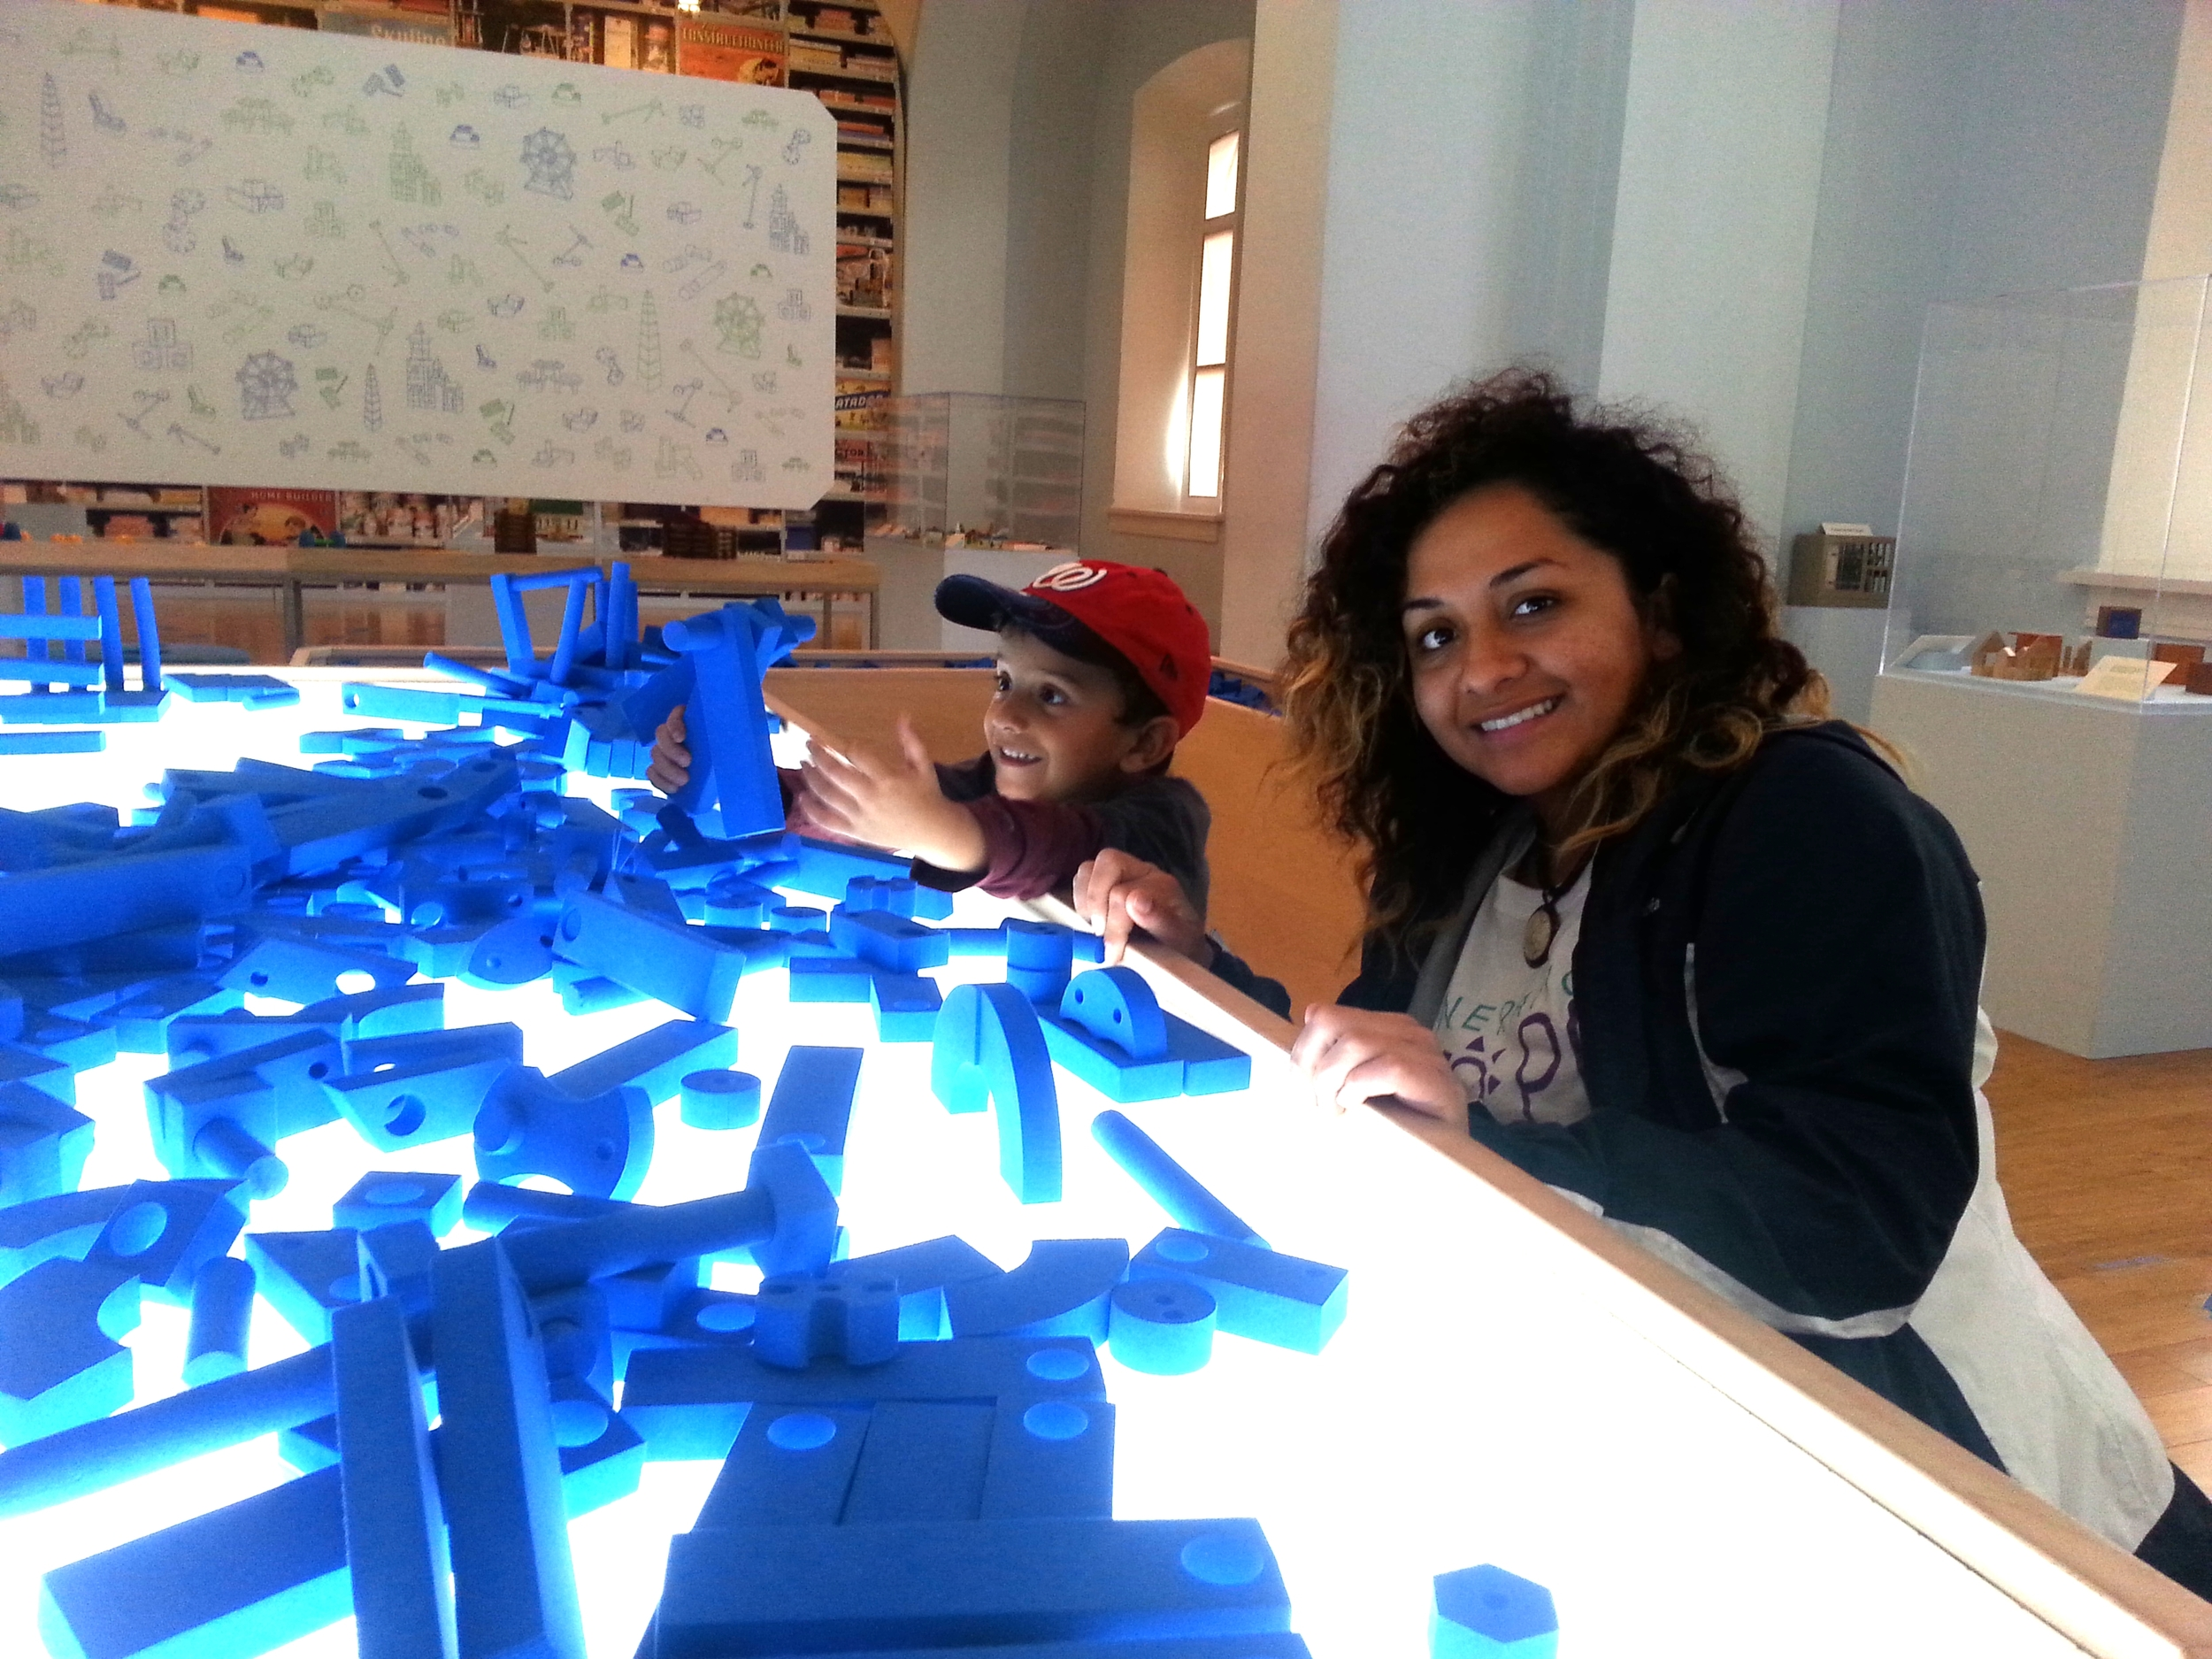 Scholar Emerita and her son enjoy the Building Zone at the National Building Museum during our fall field trip.